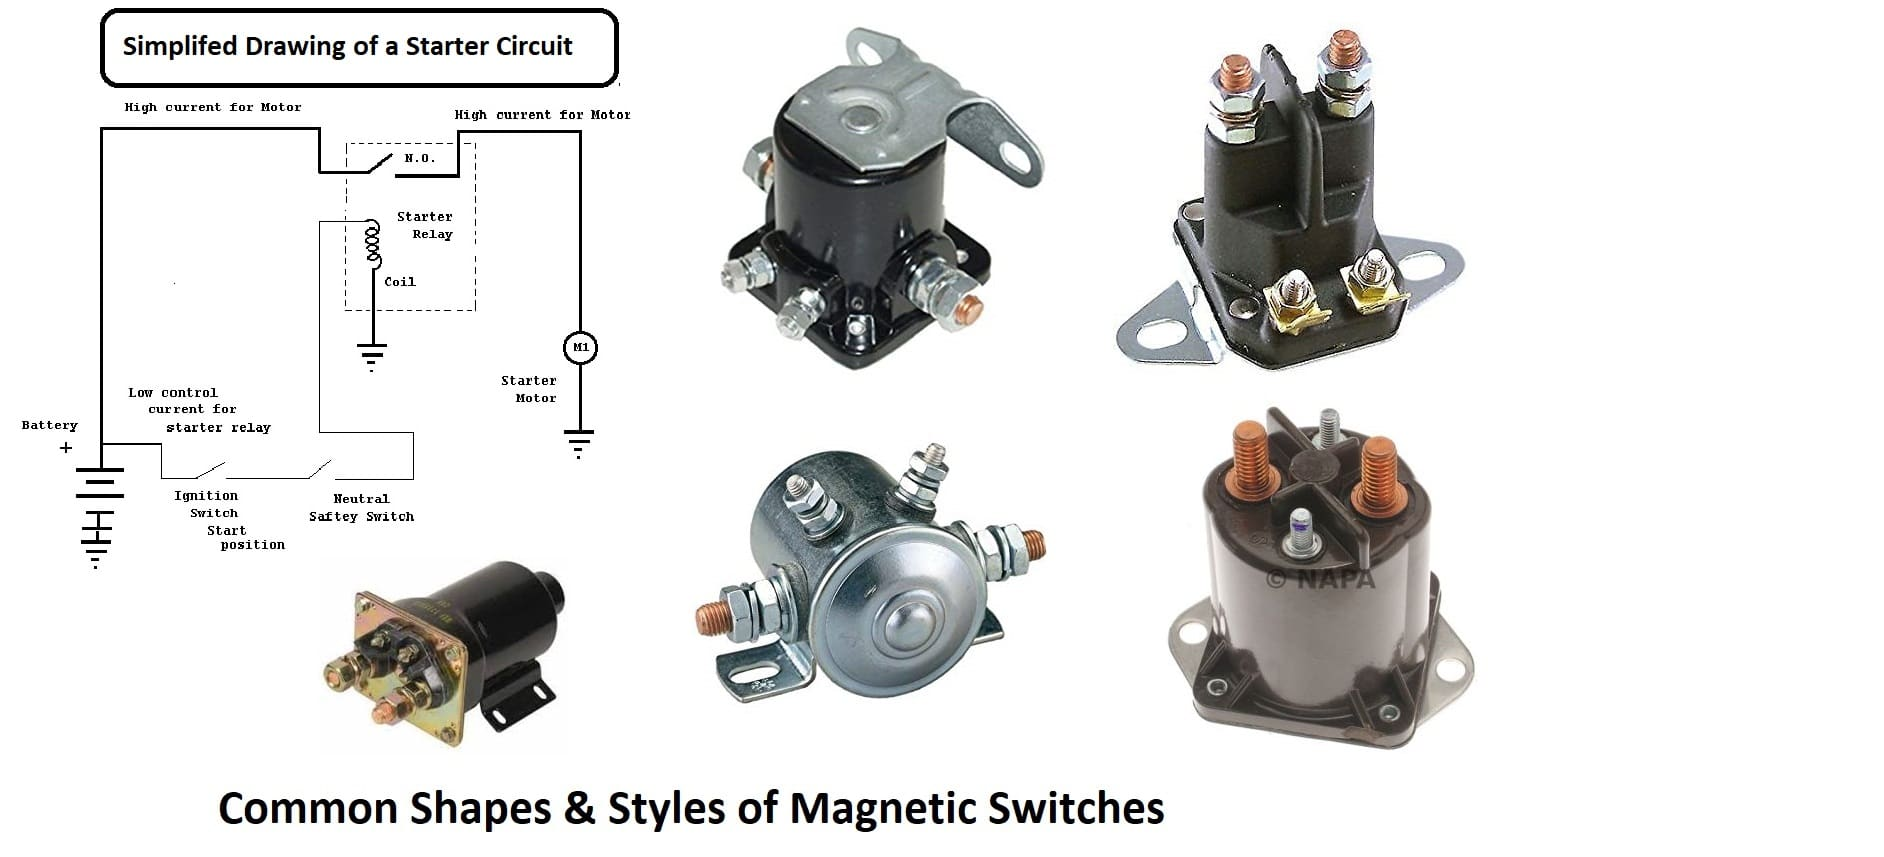 hight resolution of magnetic switches diagram and styles